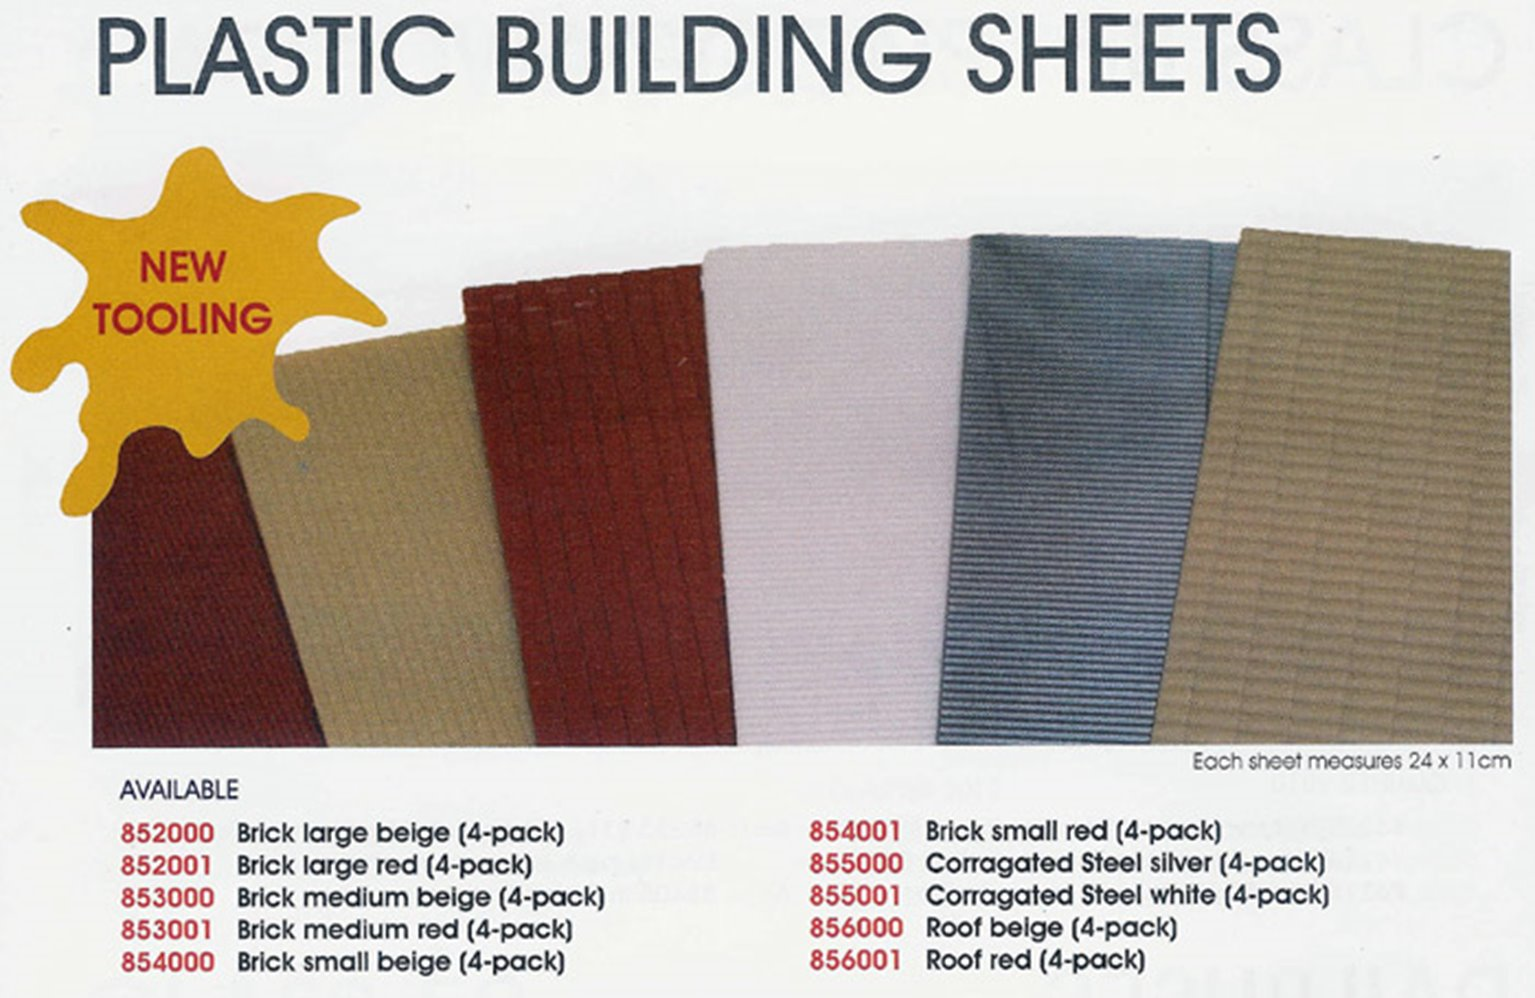 Plastic building sheets - 4 Pack (corragated steel silver)